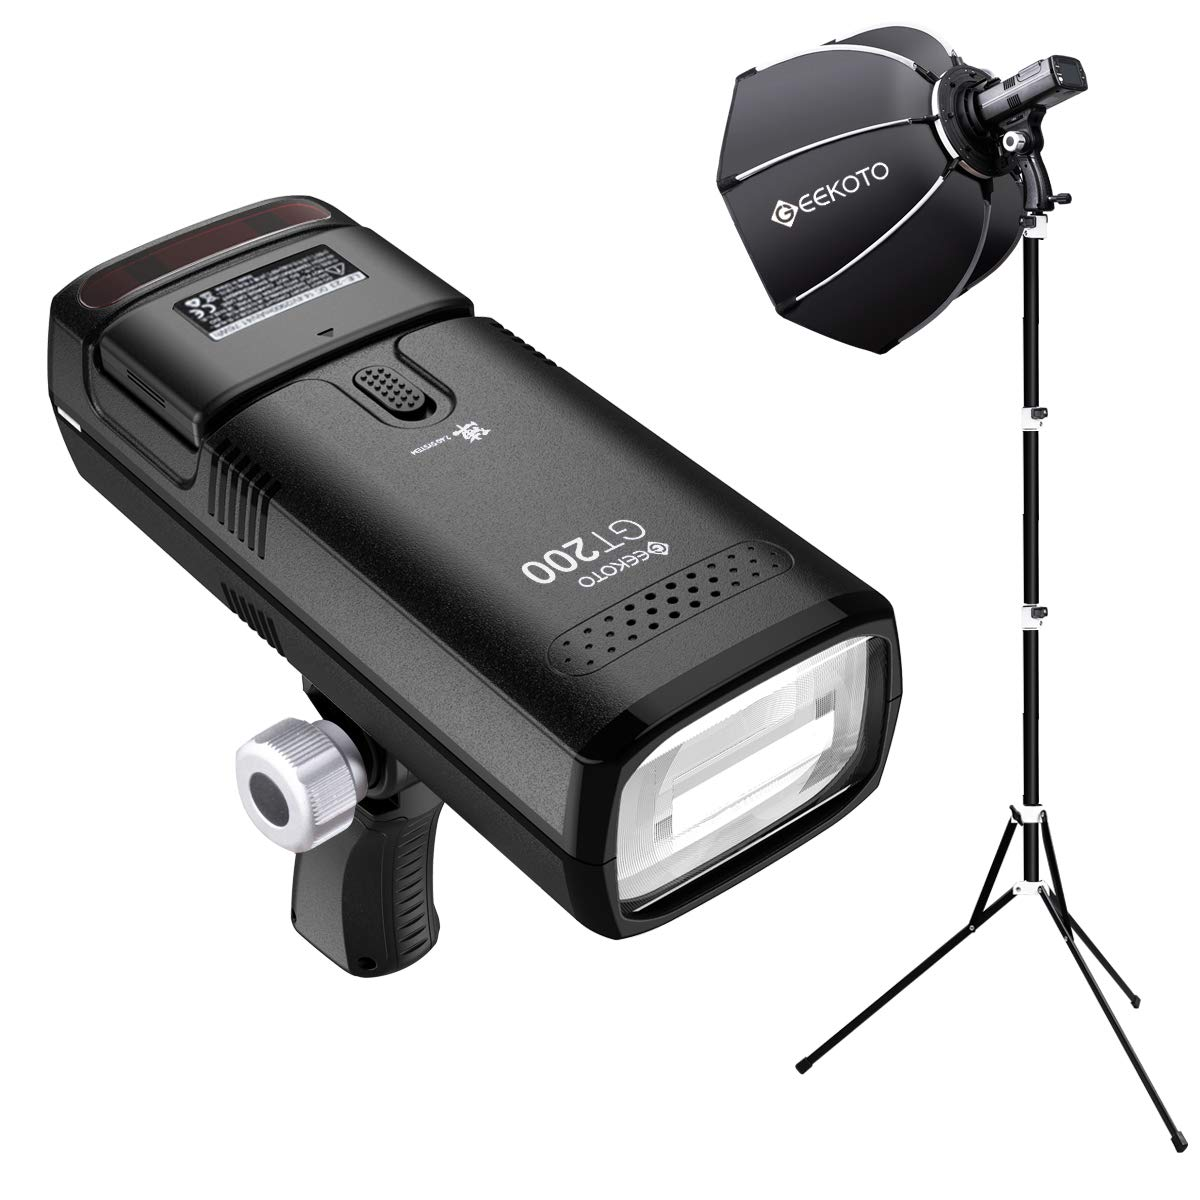 GEEKOTO Flash Speedlite Kit 200W TTL 2.4G Flash Strobe Light with Quick Release Softbox 1/8000 HSS Cordless Monolight with 2900mAh Battery and Provide 500 Flashes in 0.01-2.1 sec by GEEKOTO